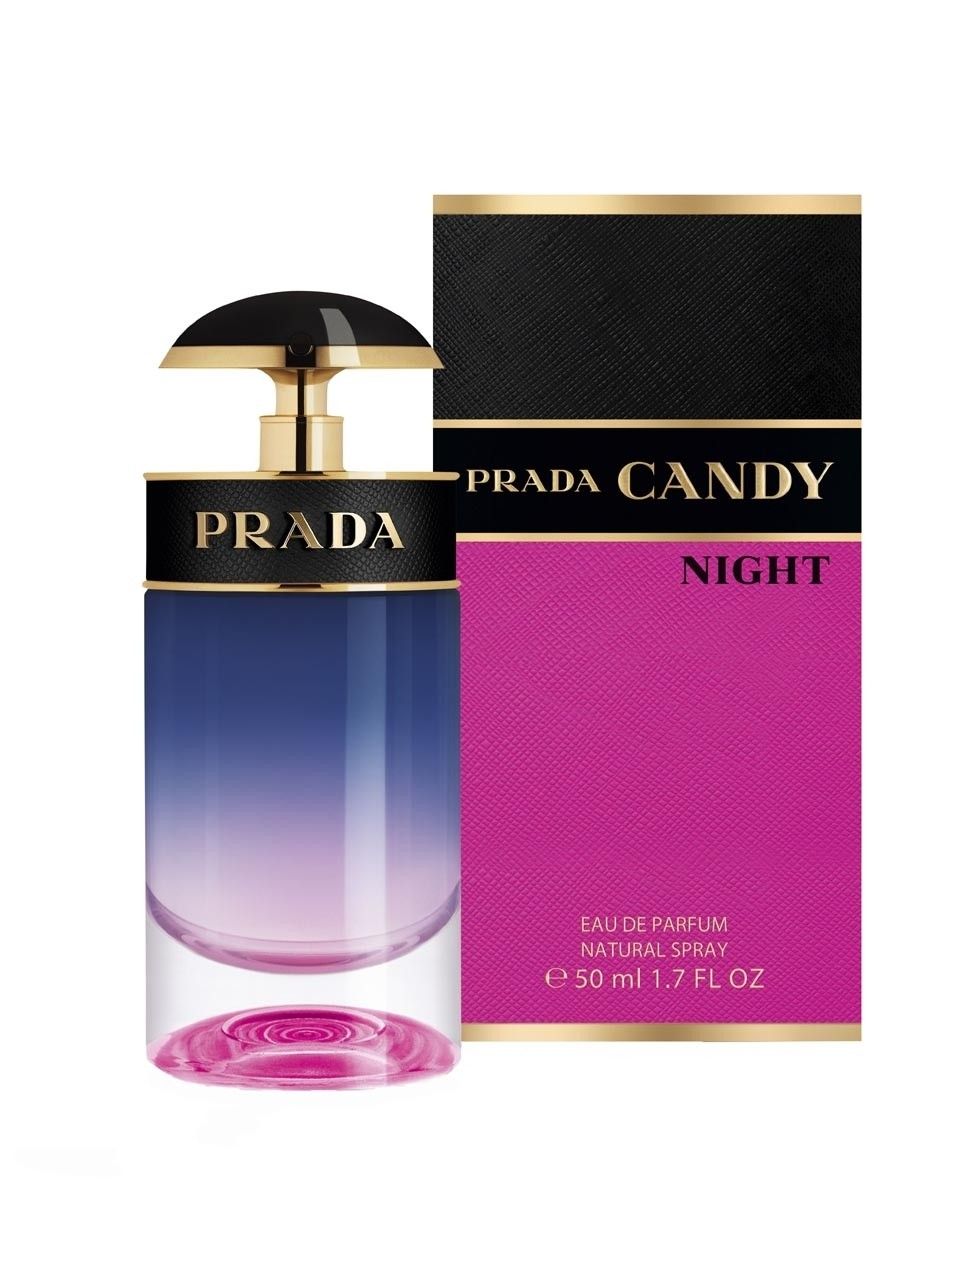 Prada, Prada Candy Night